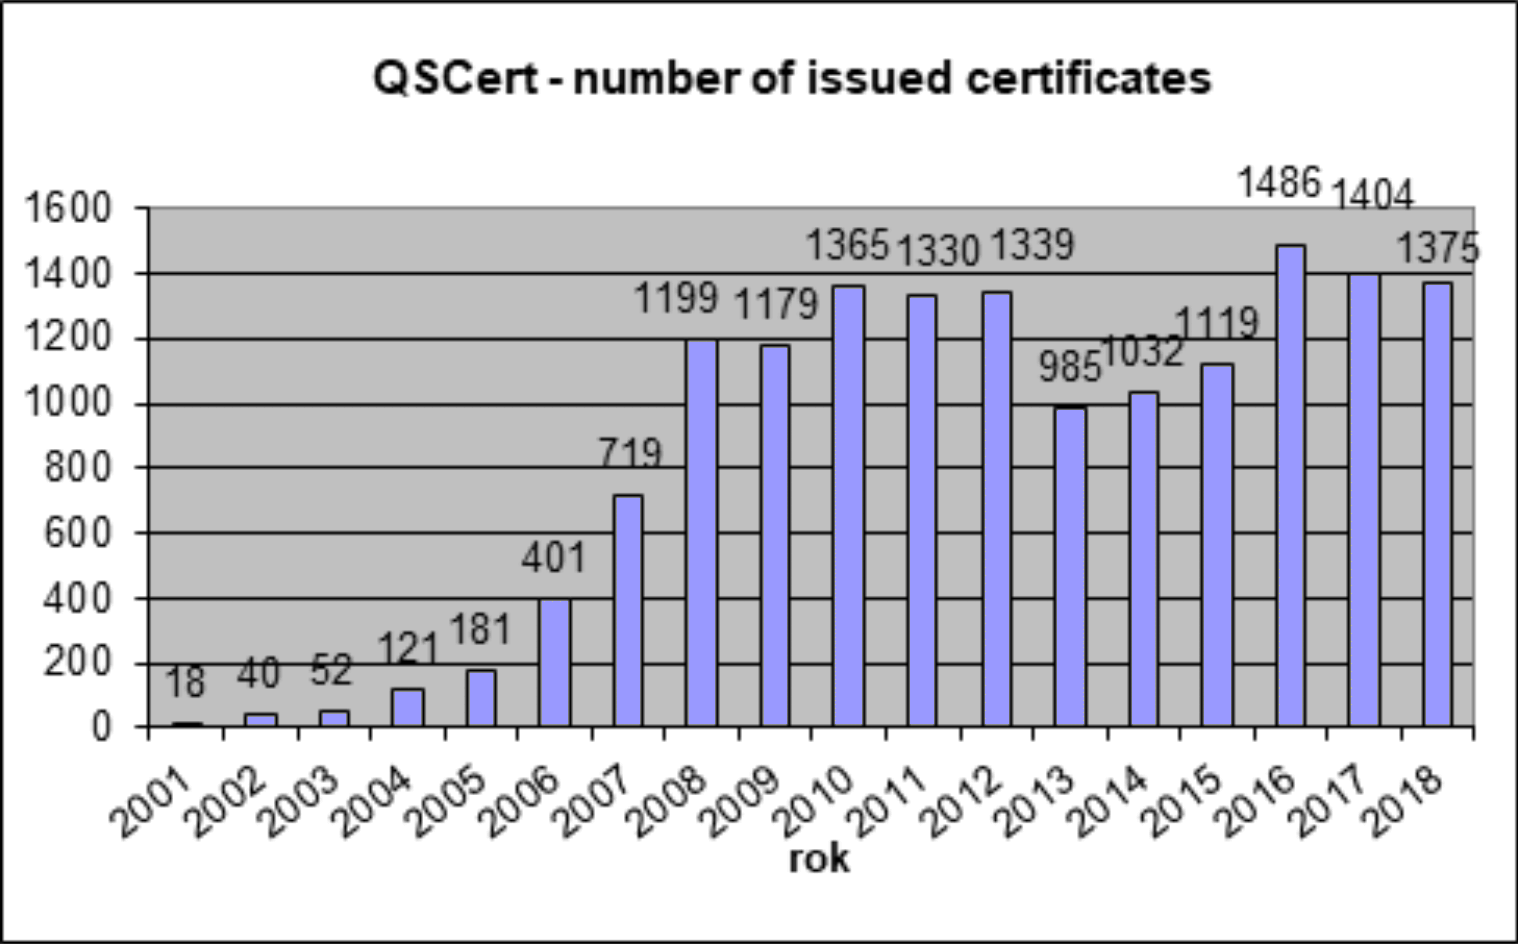 Number of issued certificates worldwide